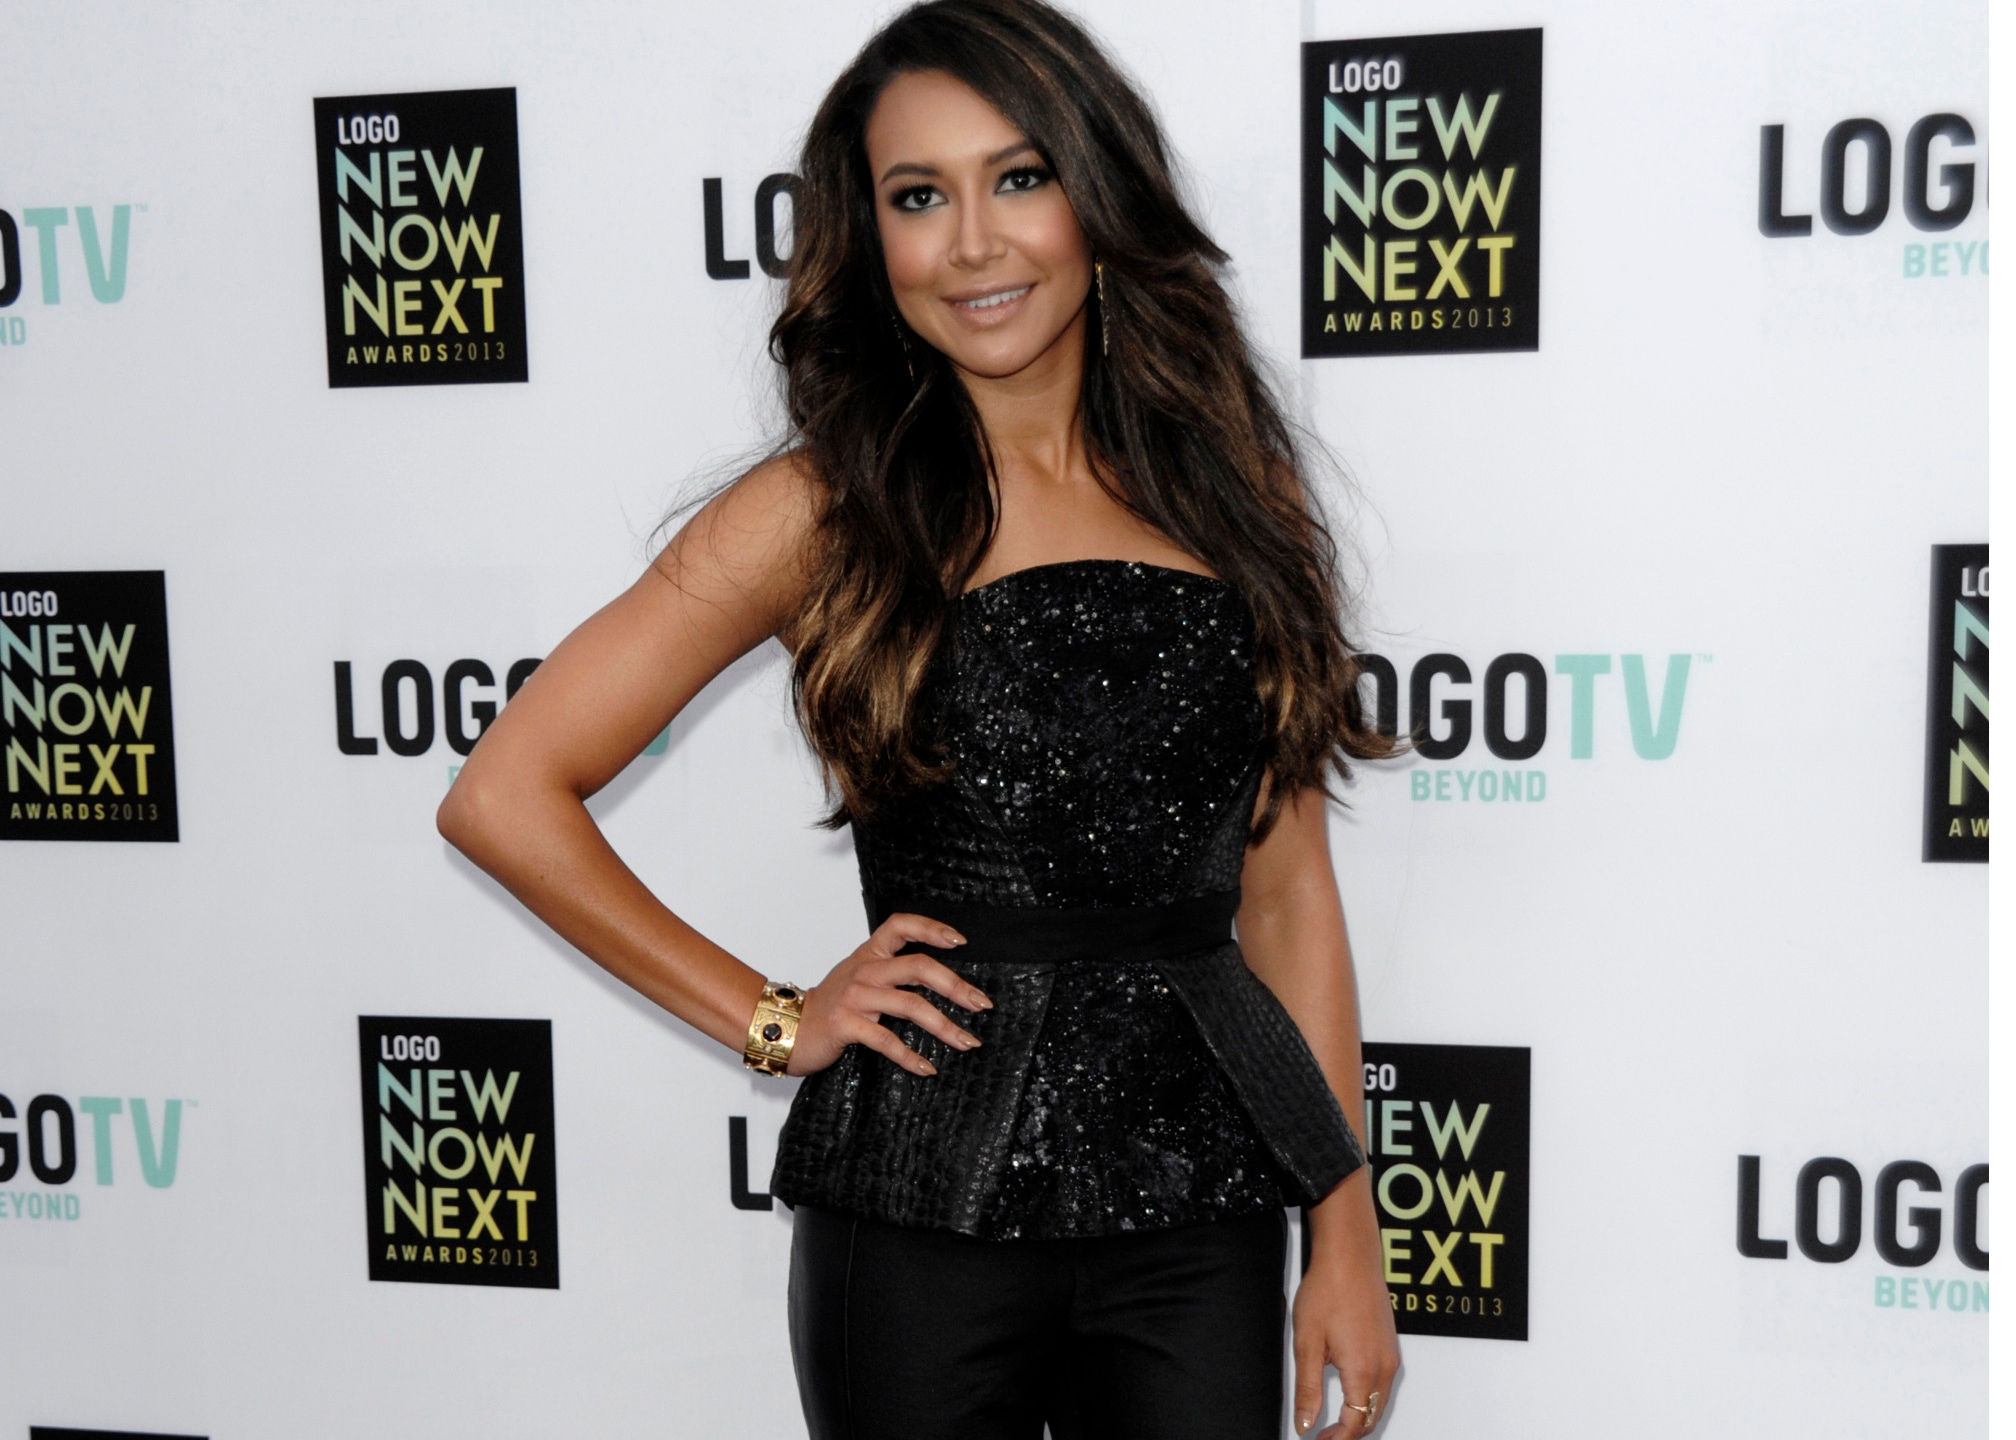 Sheriff Glee Star Naya Rivera Saved Son Before Drowning 8news